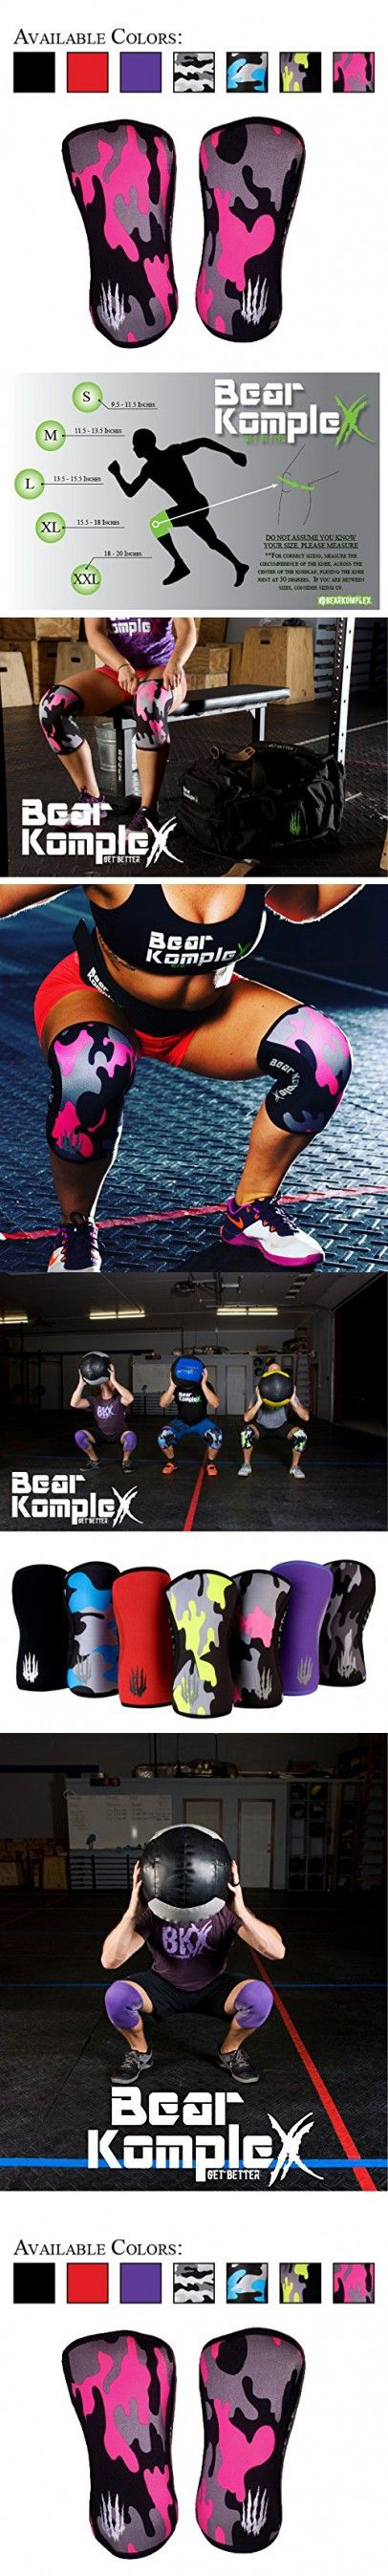 Bear KompleX Knee Sleeves (SOLD AS A PAIR of 2) Crossfit, Weightlifting, Powerlifting, Squats, and more. Neoprene Compression sleeves come in 5mm and 7mm, multiple colors, PINK CAMO 7mm LARGE